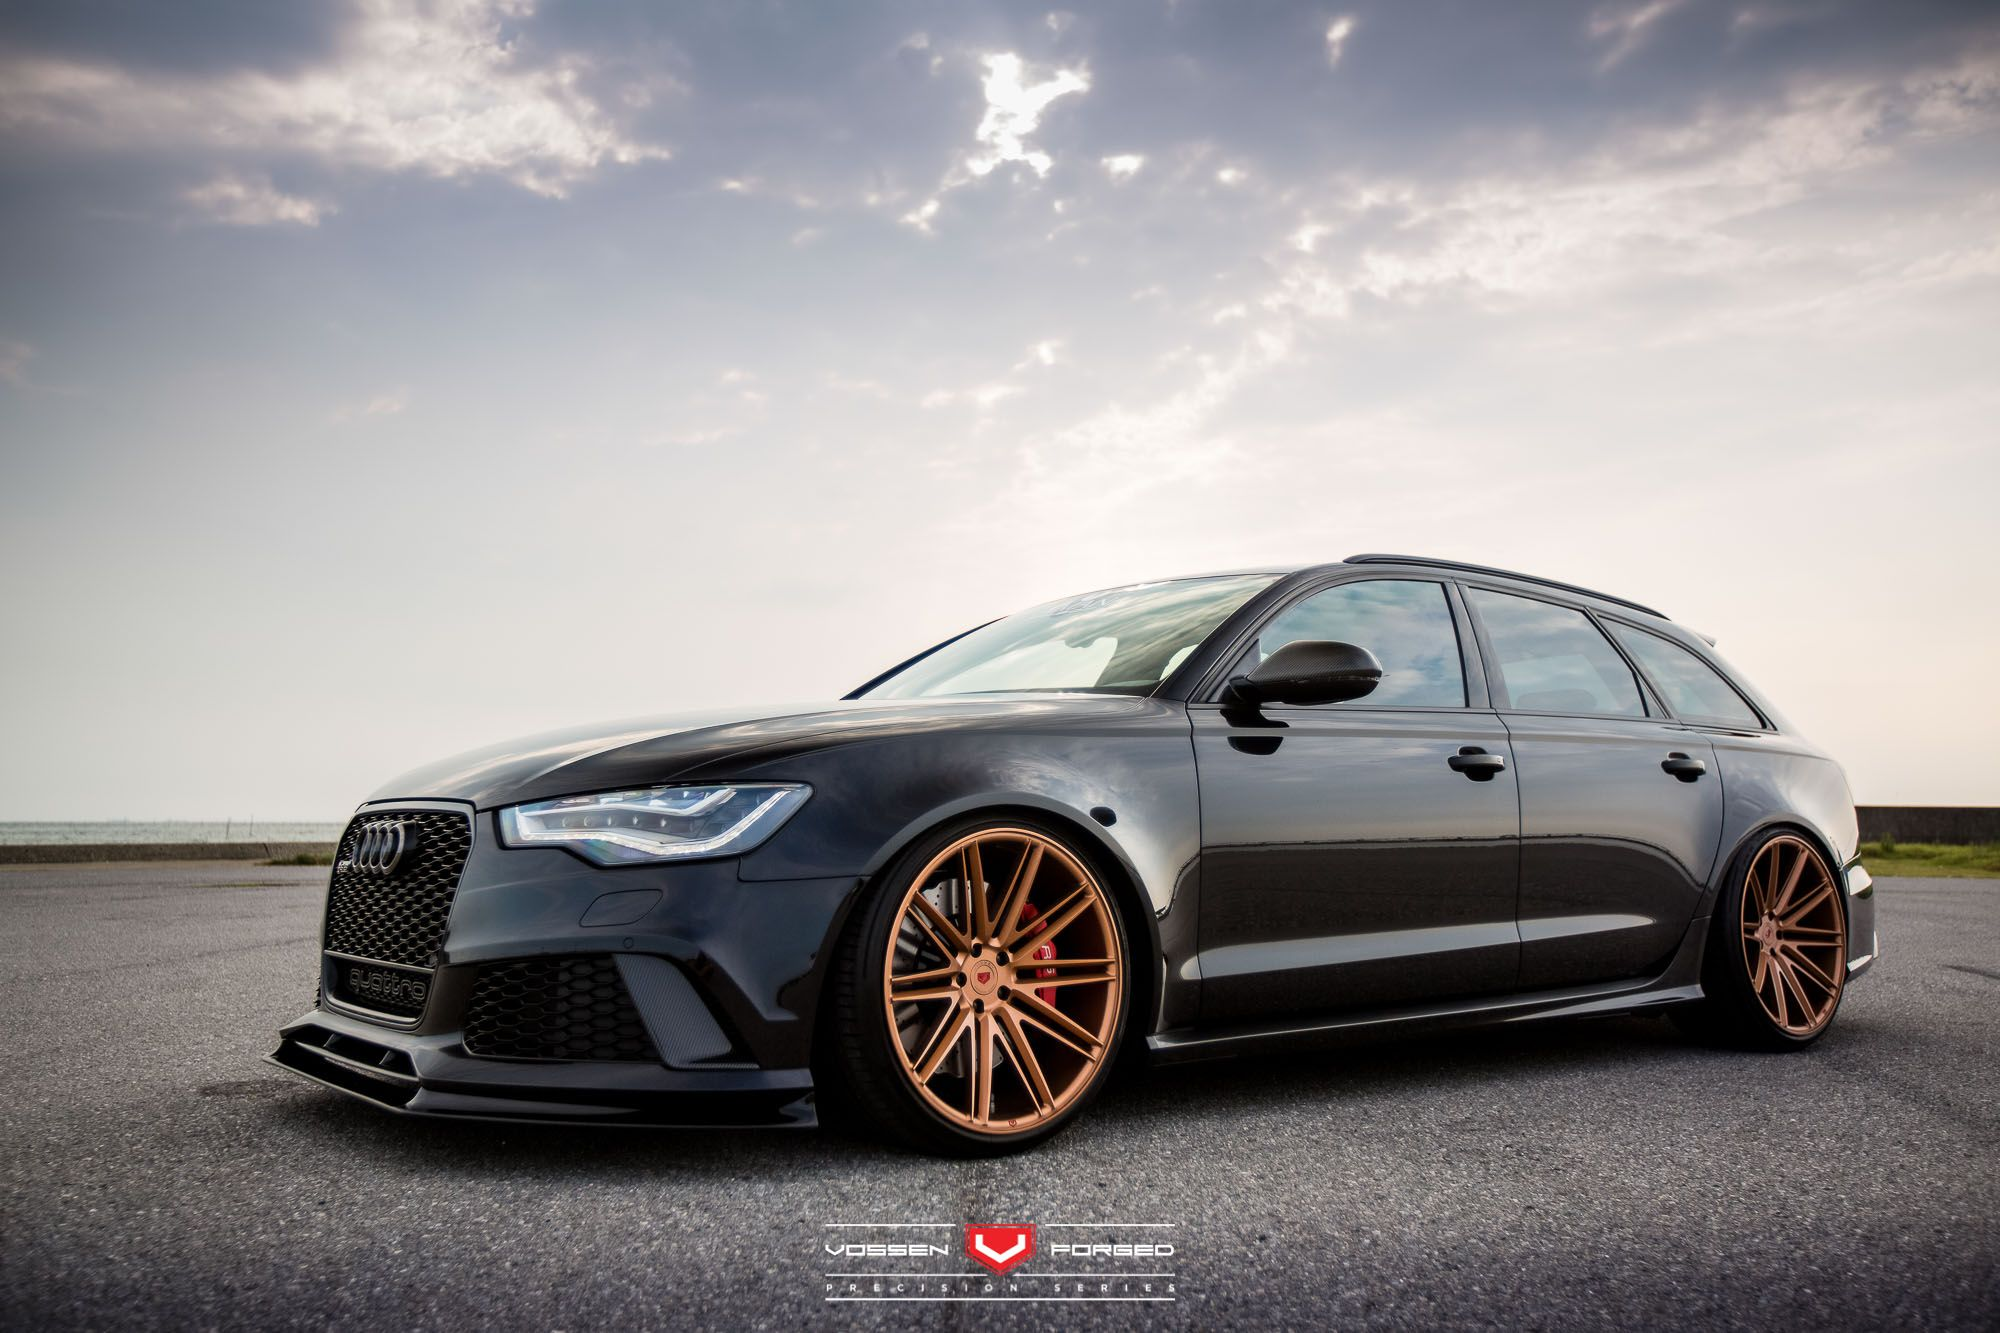 Hamana audi c7 rs6 on vossen forged vps 307 wheels audi auto union pinterest audi wheels and cars